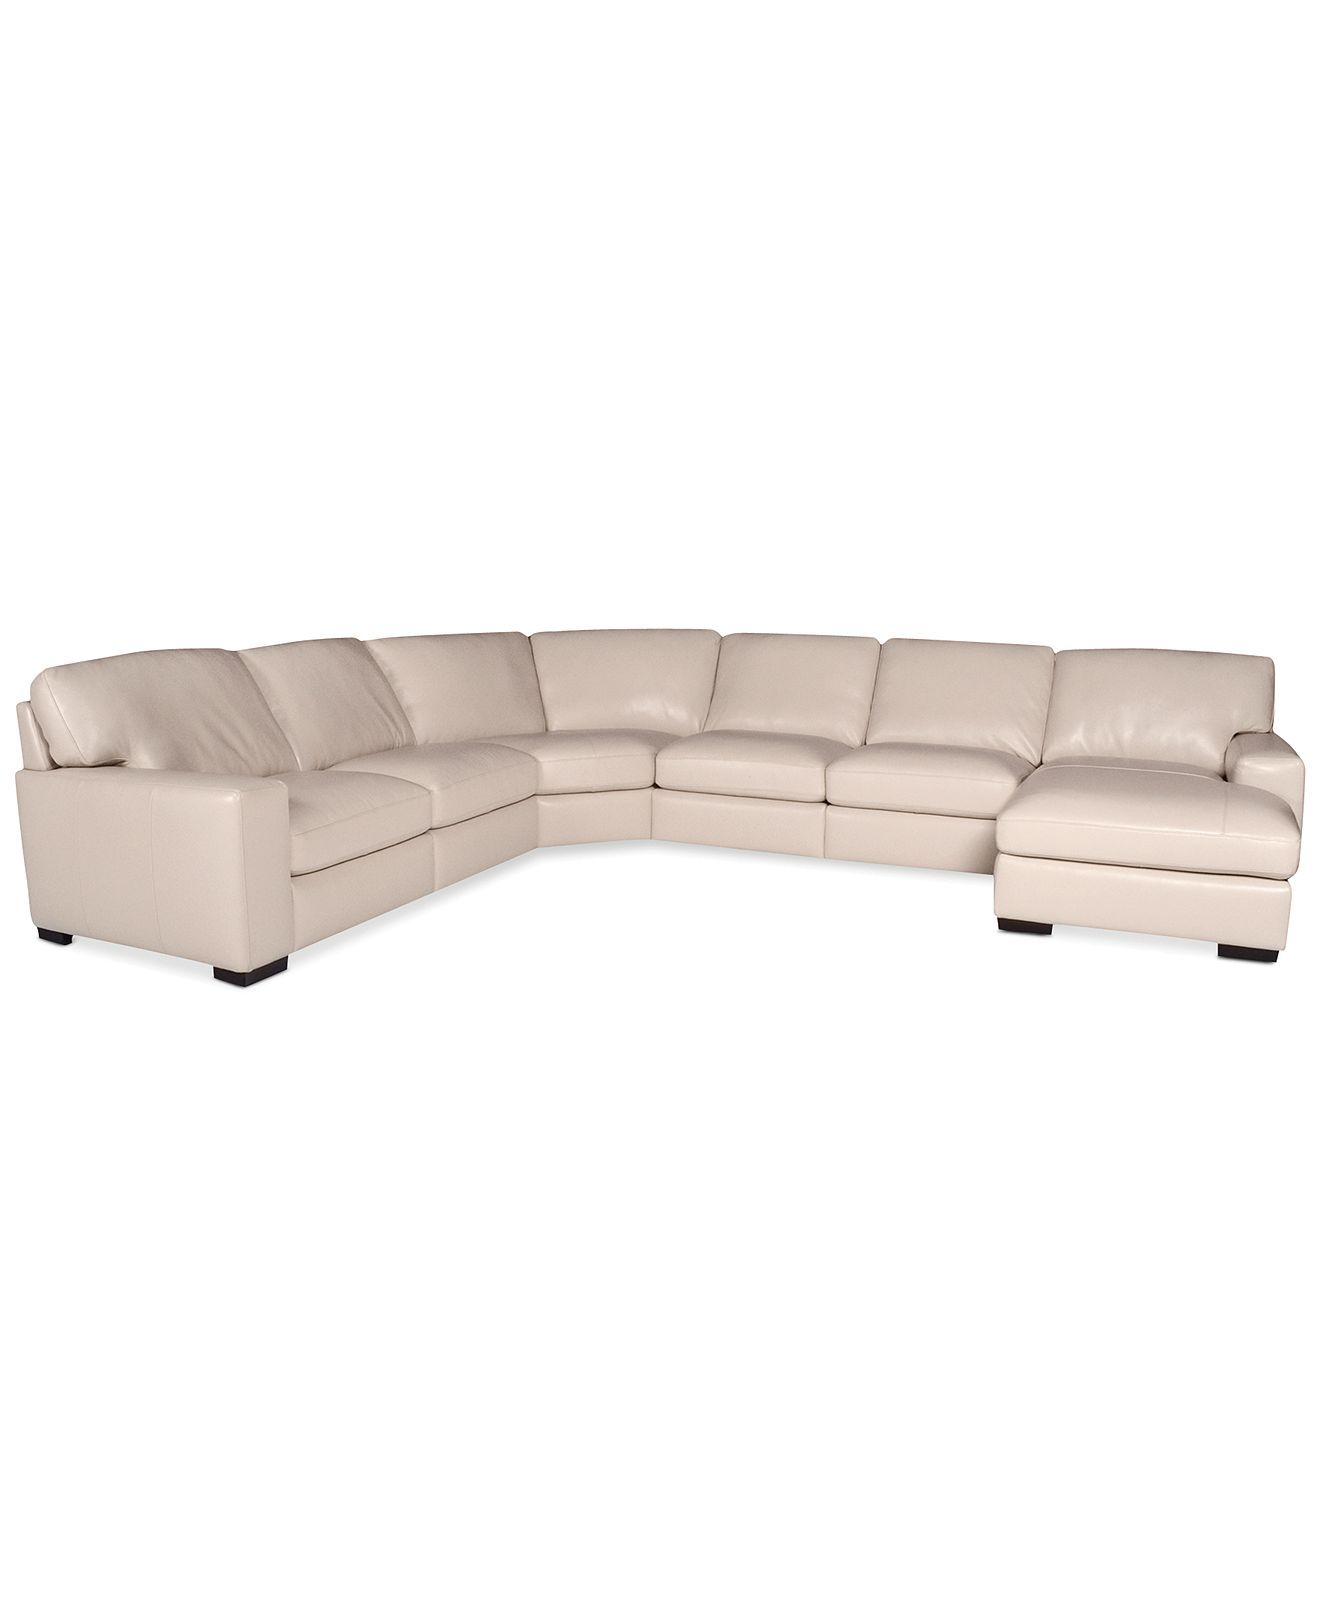 Best In Oyster Fabrizio Leather 6 Piece Chaise Sectional Sofa 400 x 300